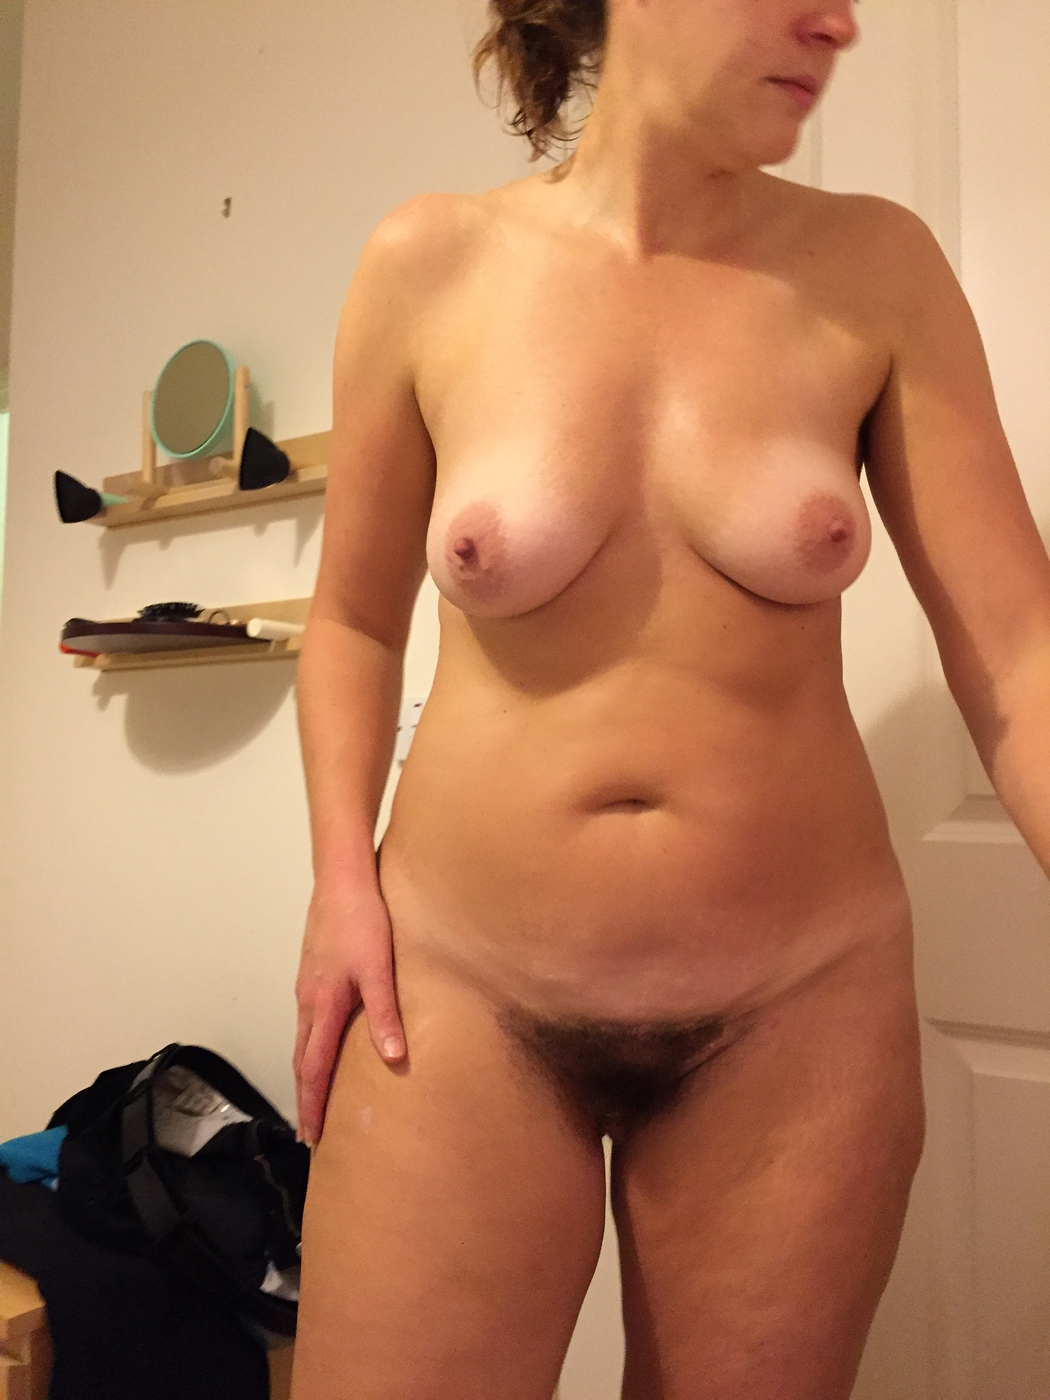 Milf With Smaller Tits And Furry Muff